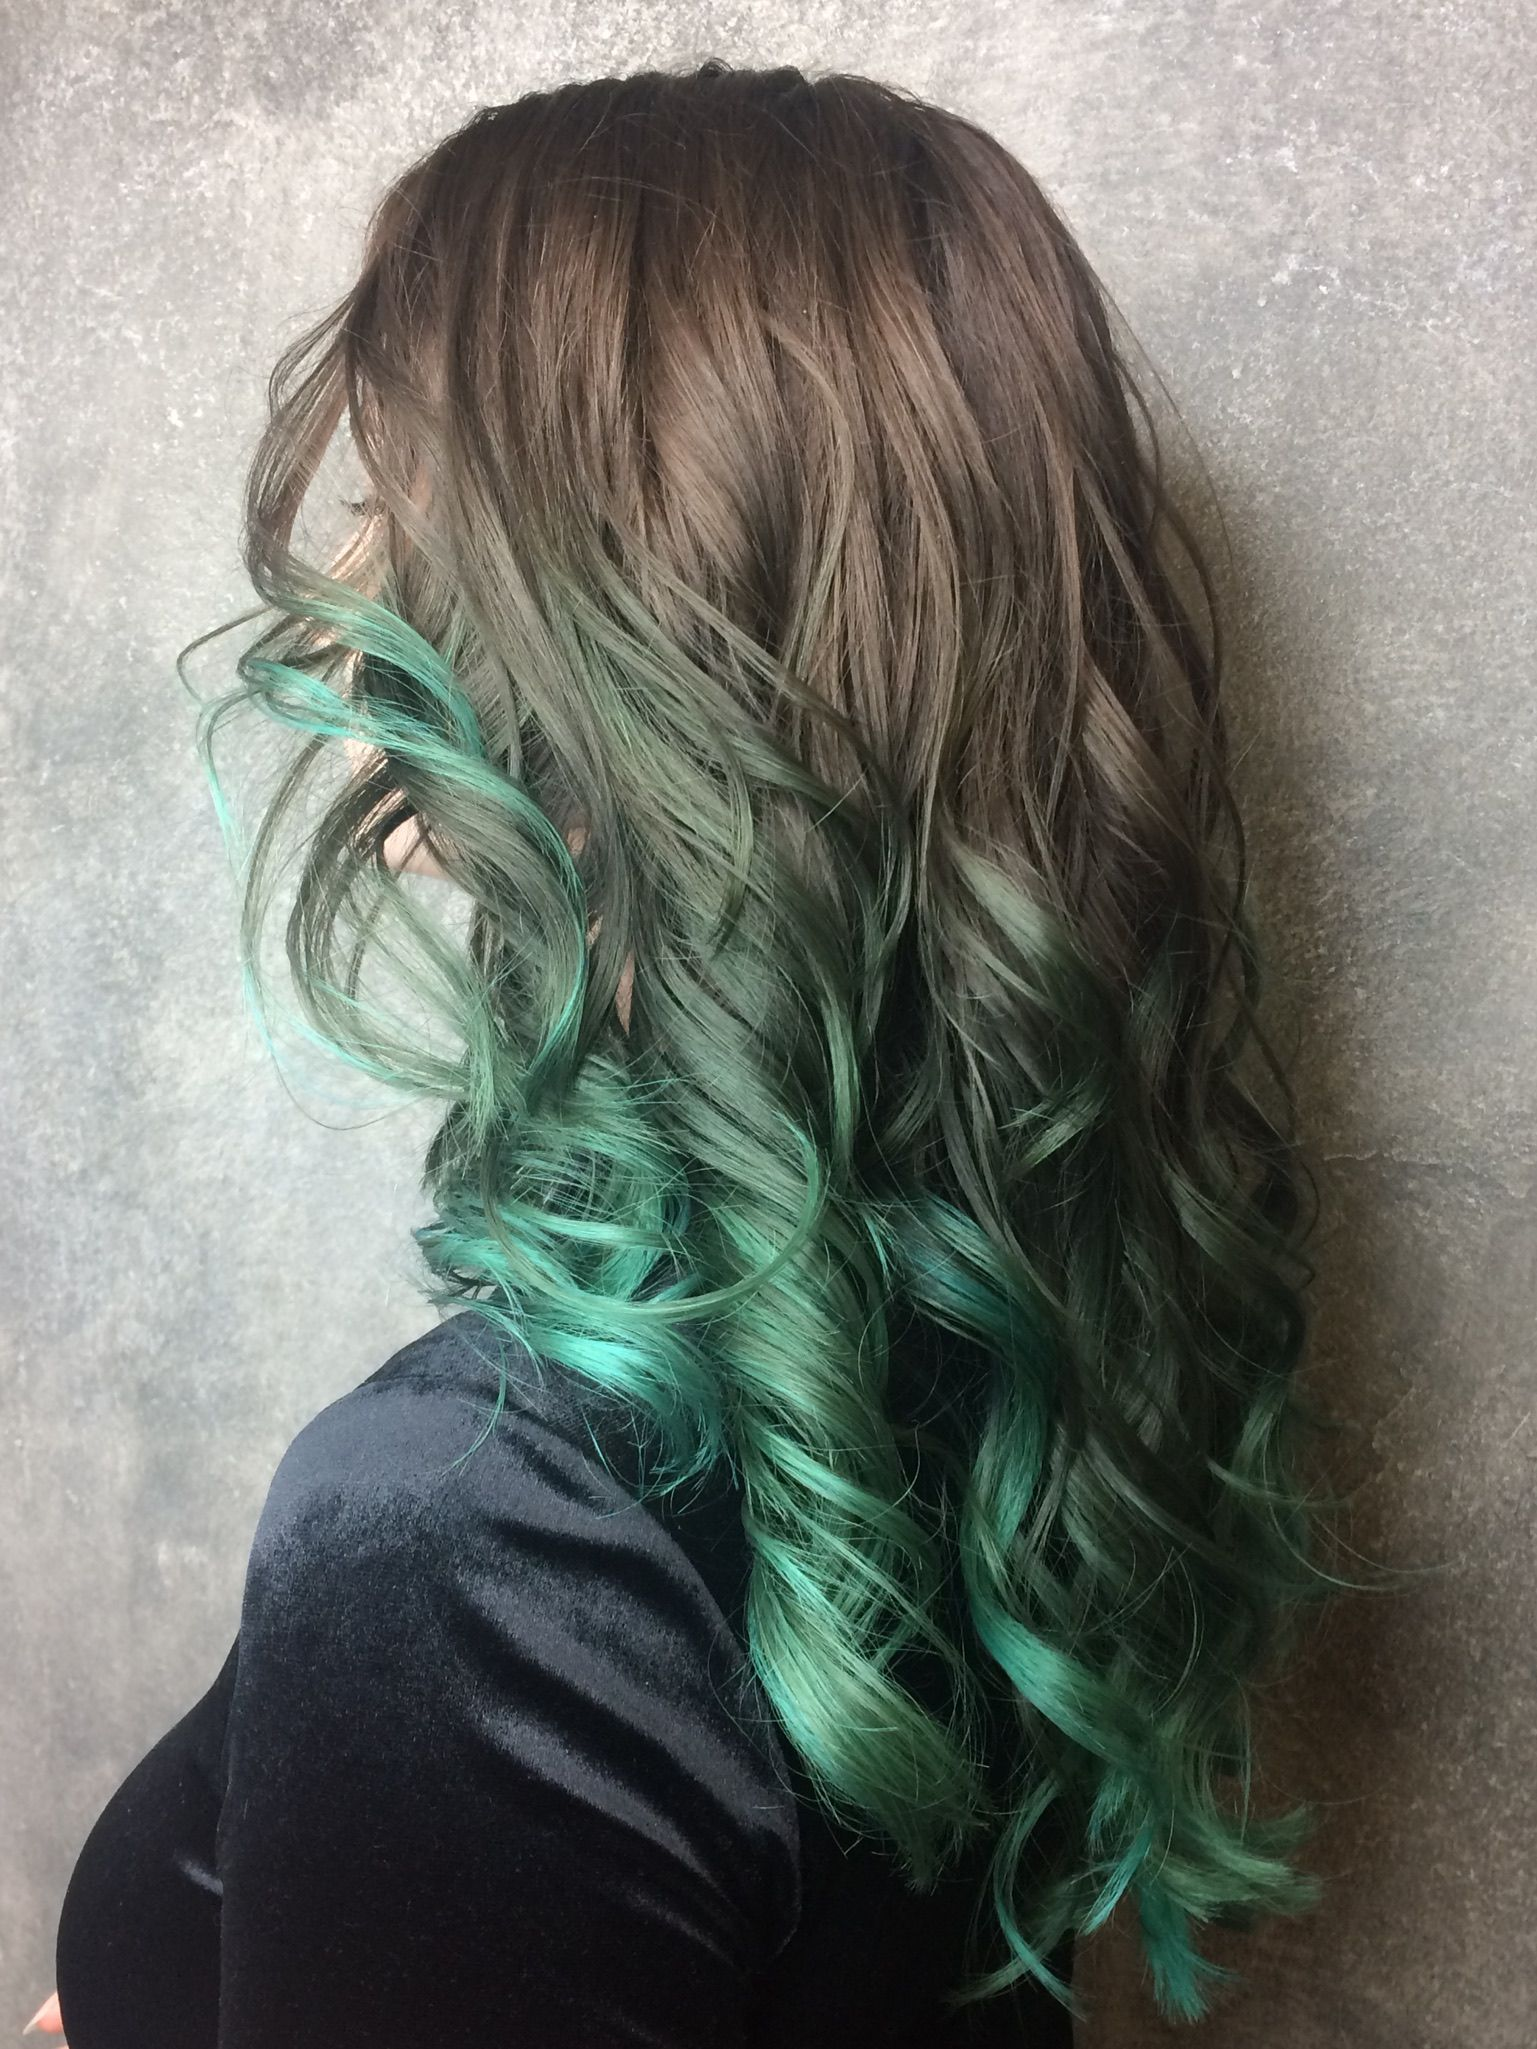 Pin By Rose On Weird Hair Colors Pinterest Weird Hair Colors And